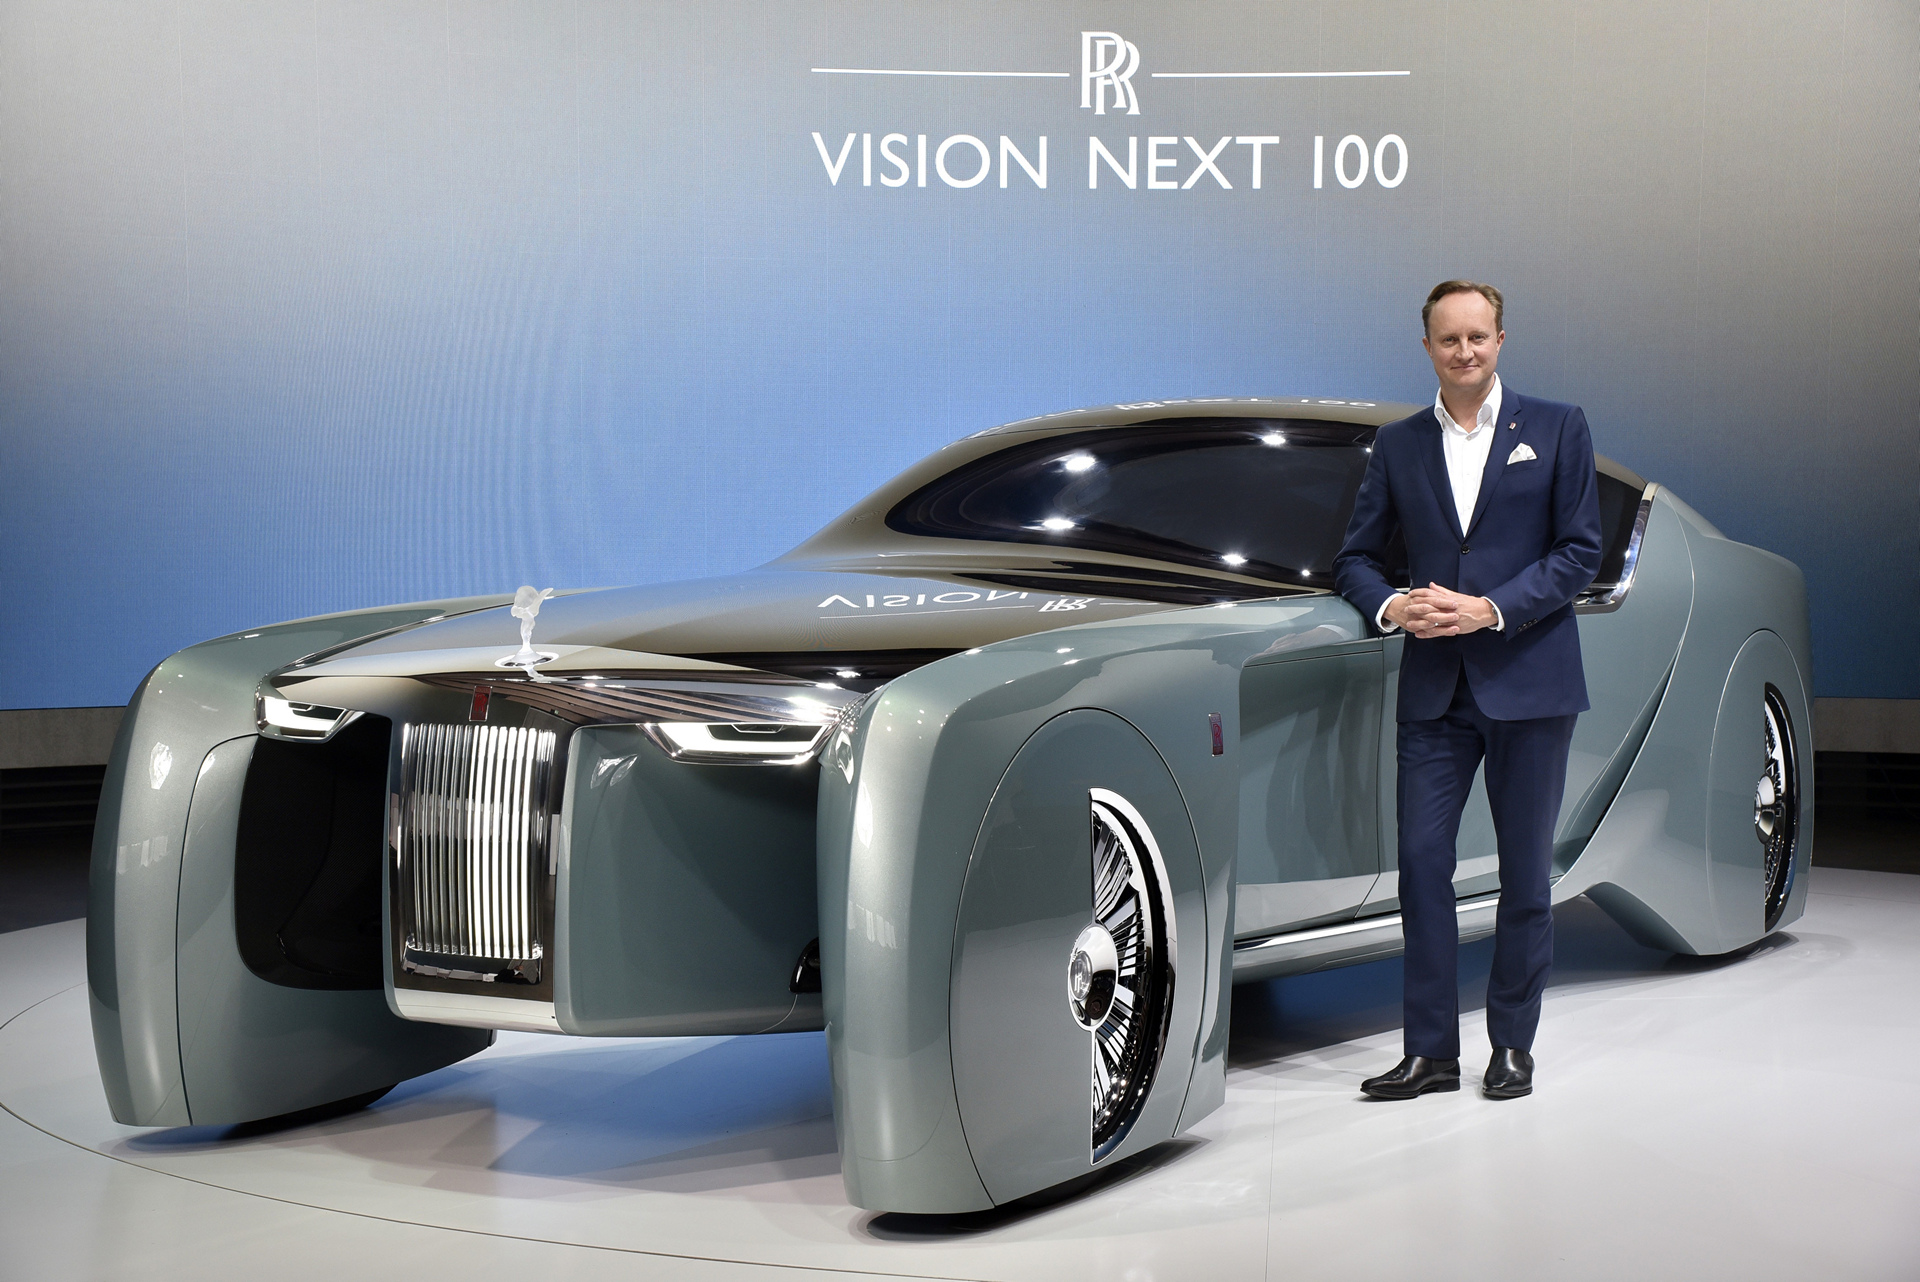 Rolls-Royce VISION NEXT 100, Giles Taylor, Design Director Rolls-Royce Motor Cars © BMW AG